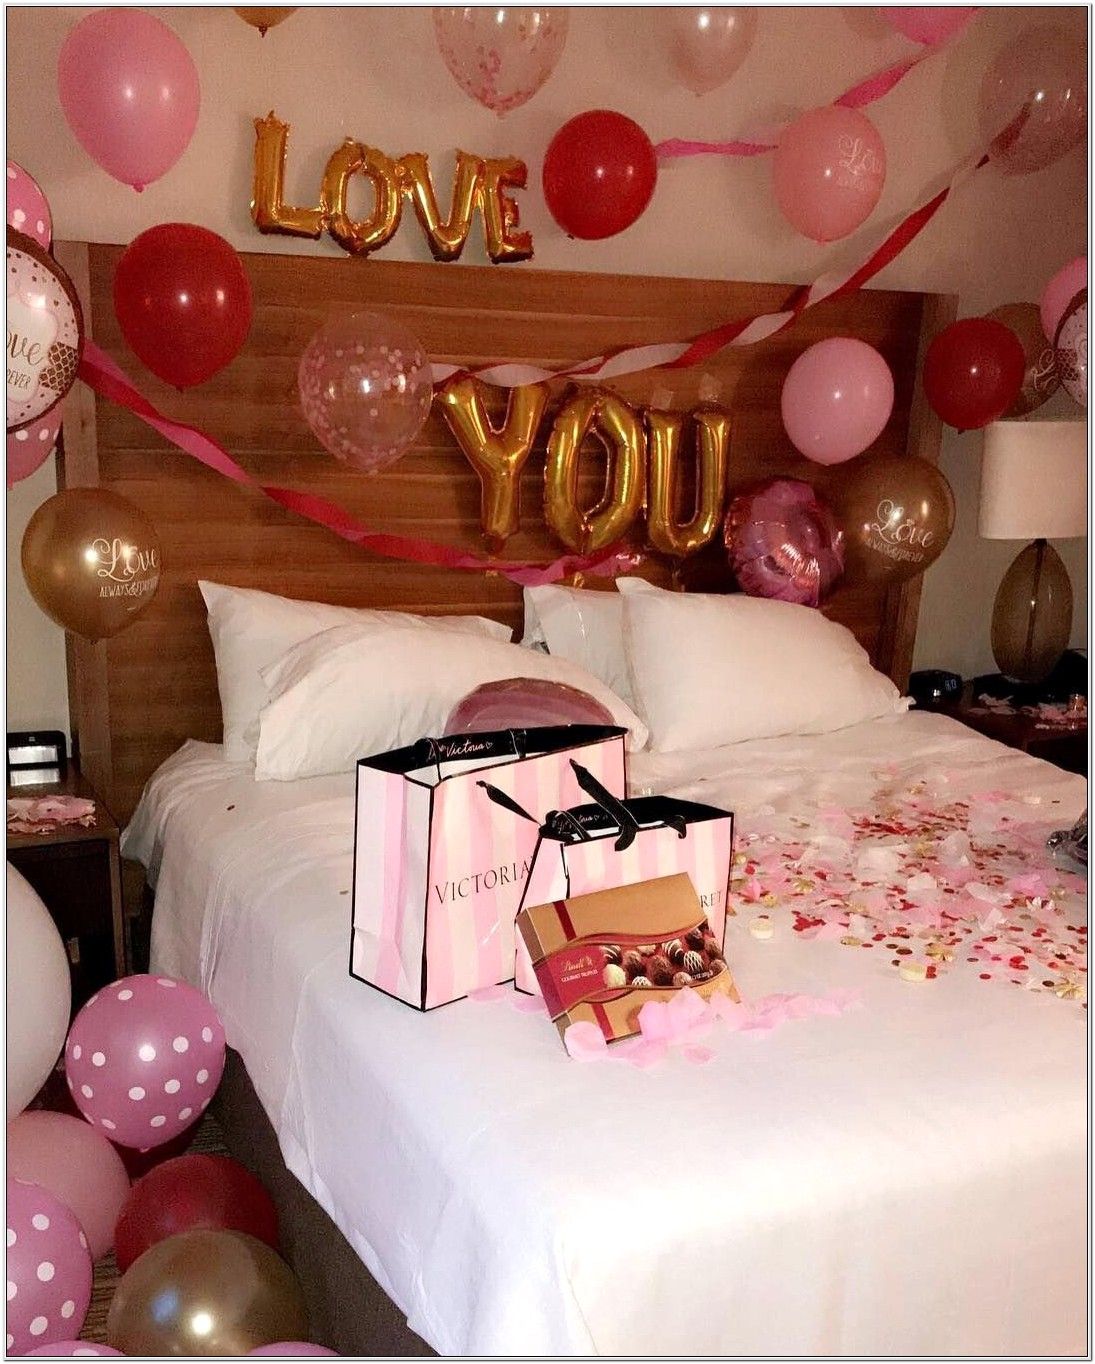 Decoration Of Bedroom For Birthday